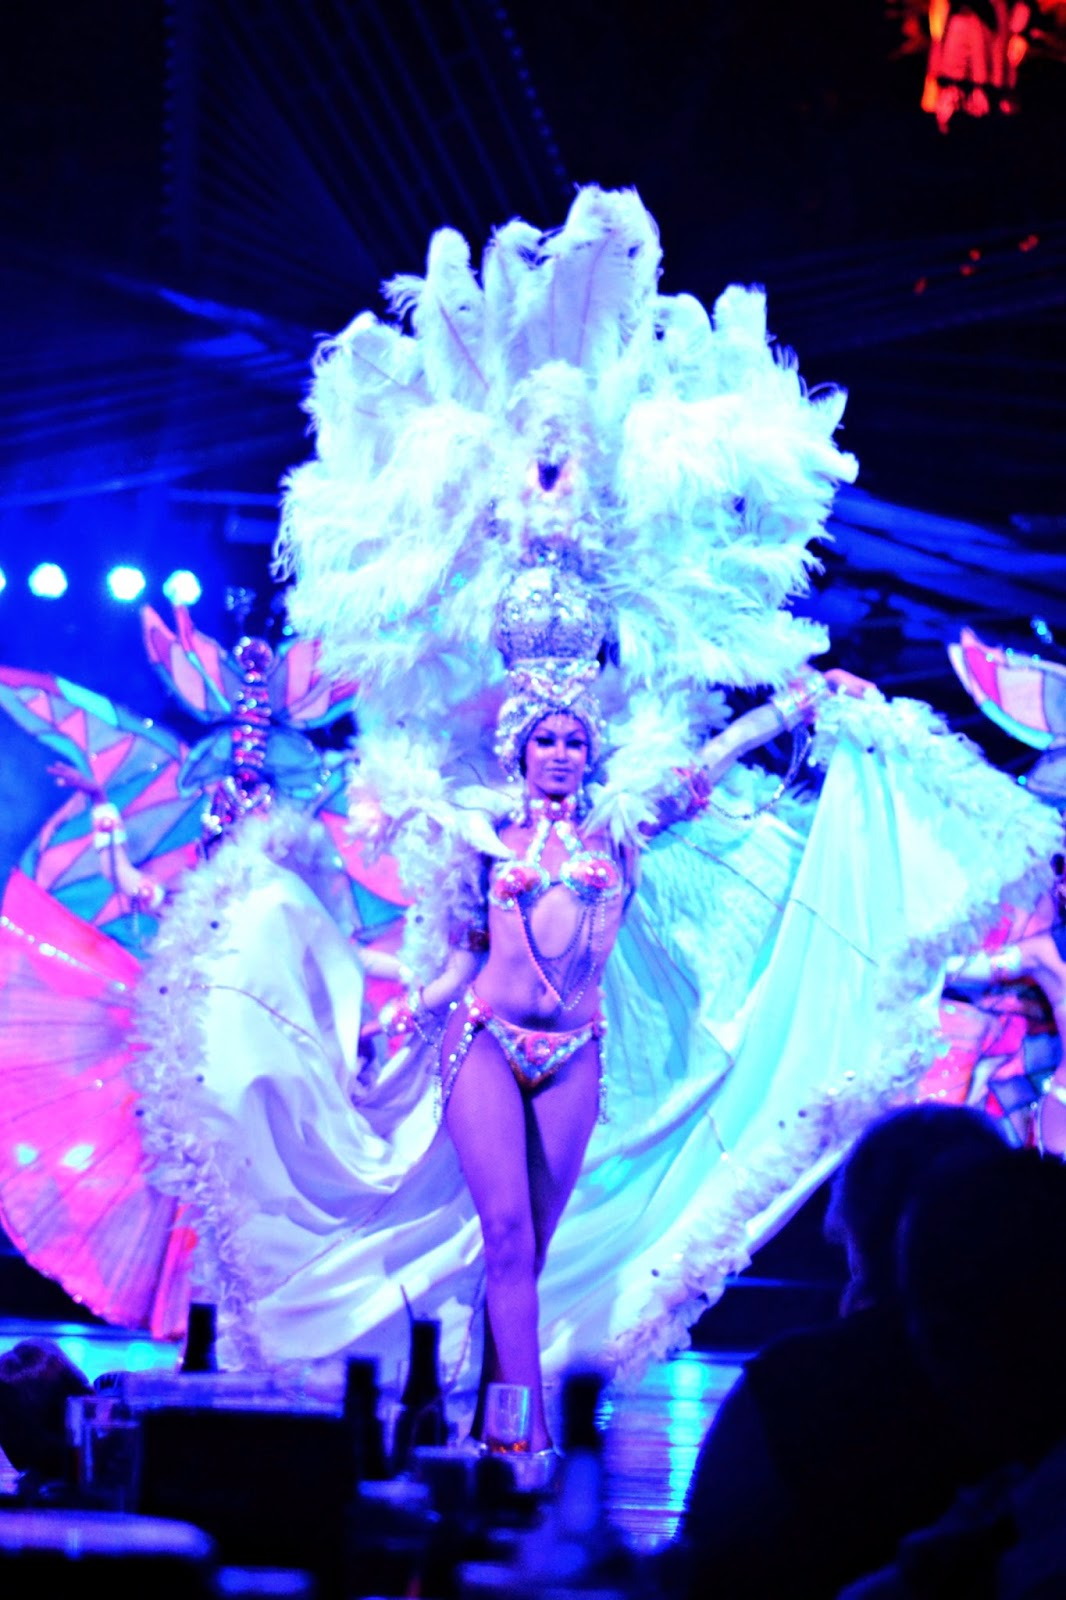 Showgirl at Tropicana Club Havana Cuba